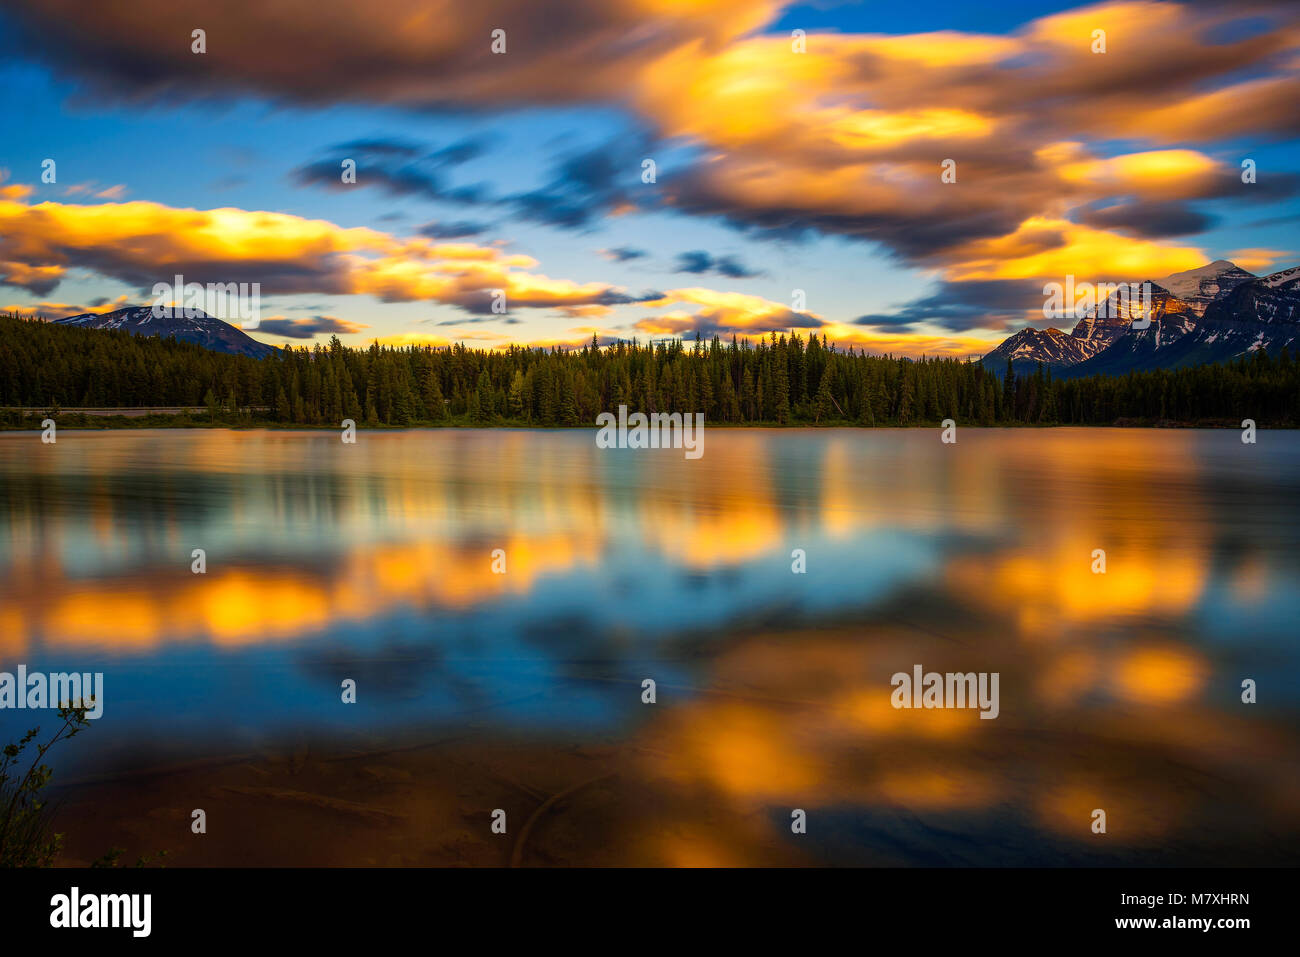 sunset-over-herbert-lake-in-banff-national-park-alberta-canada-M7XHRN.jpg